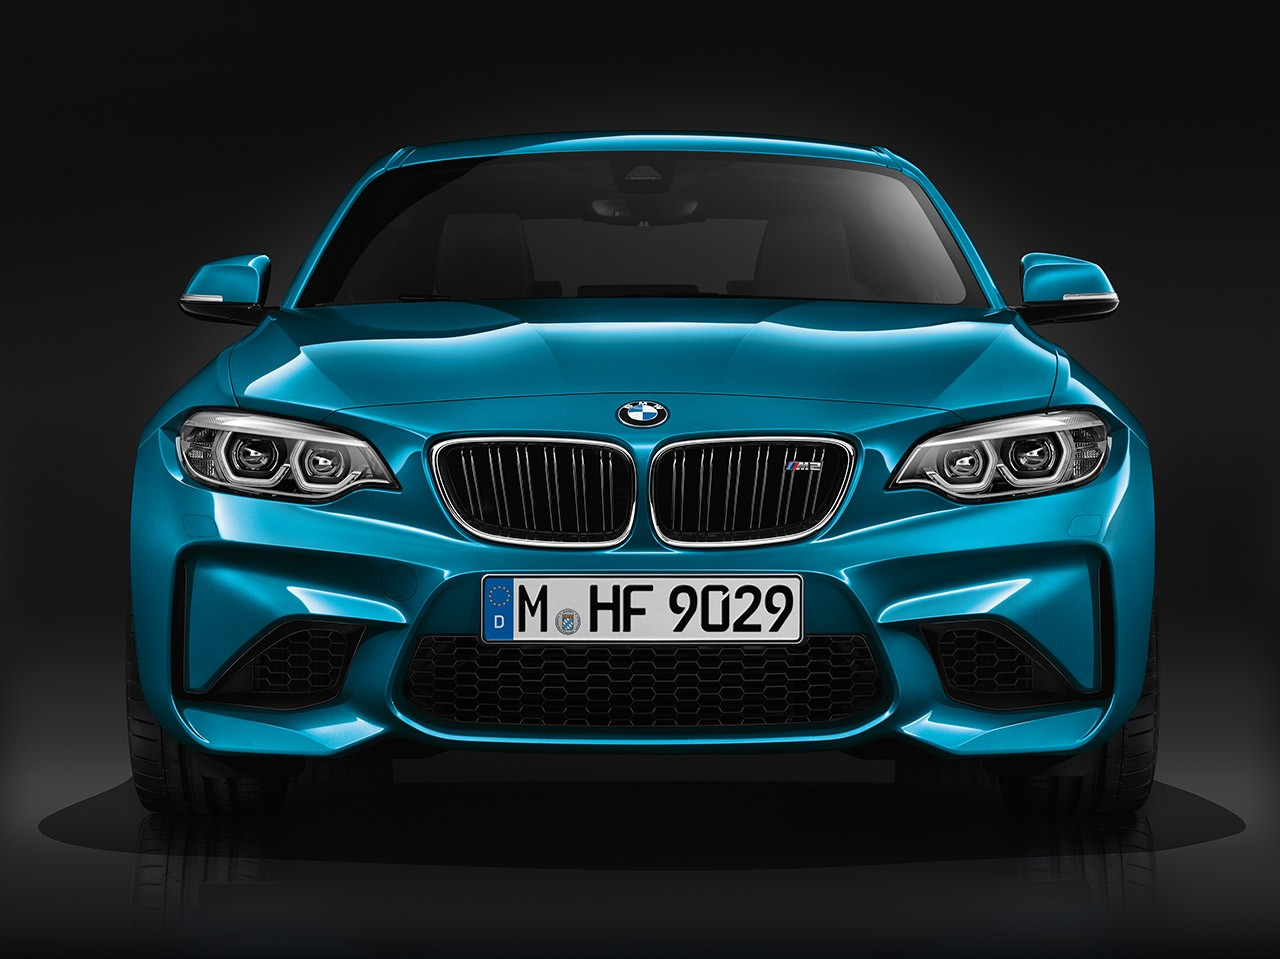 2018 BMW 2 Series frontview